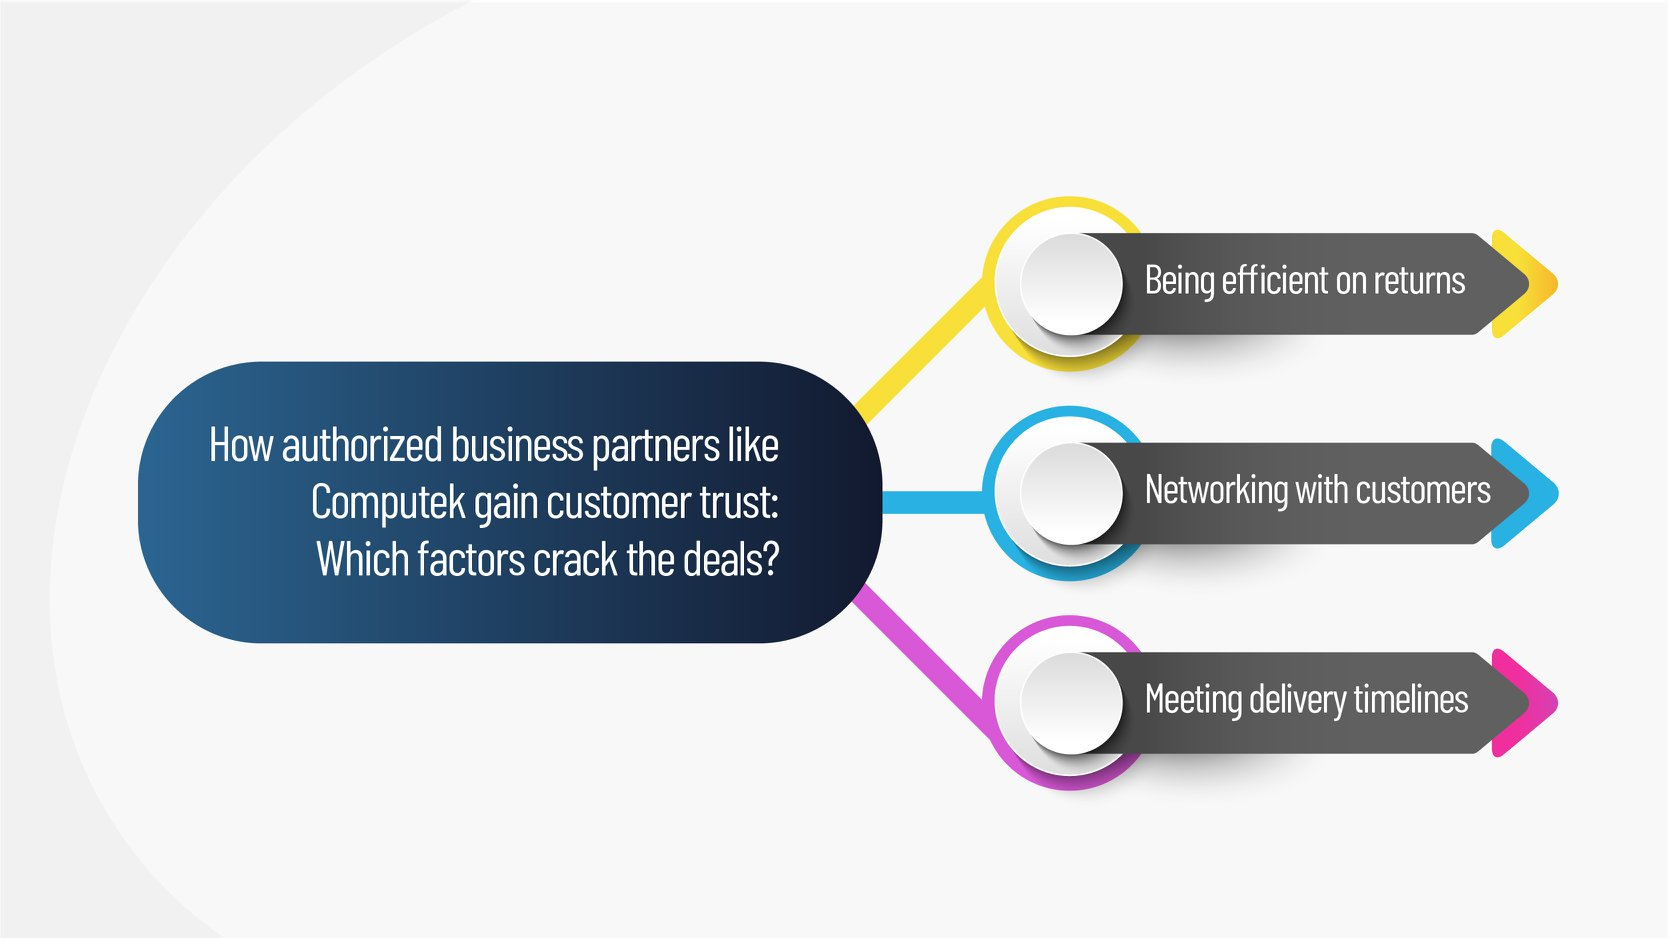 How authorized business partners like Computek